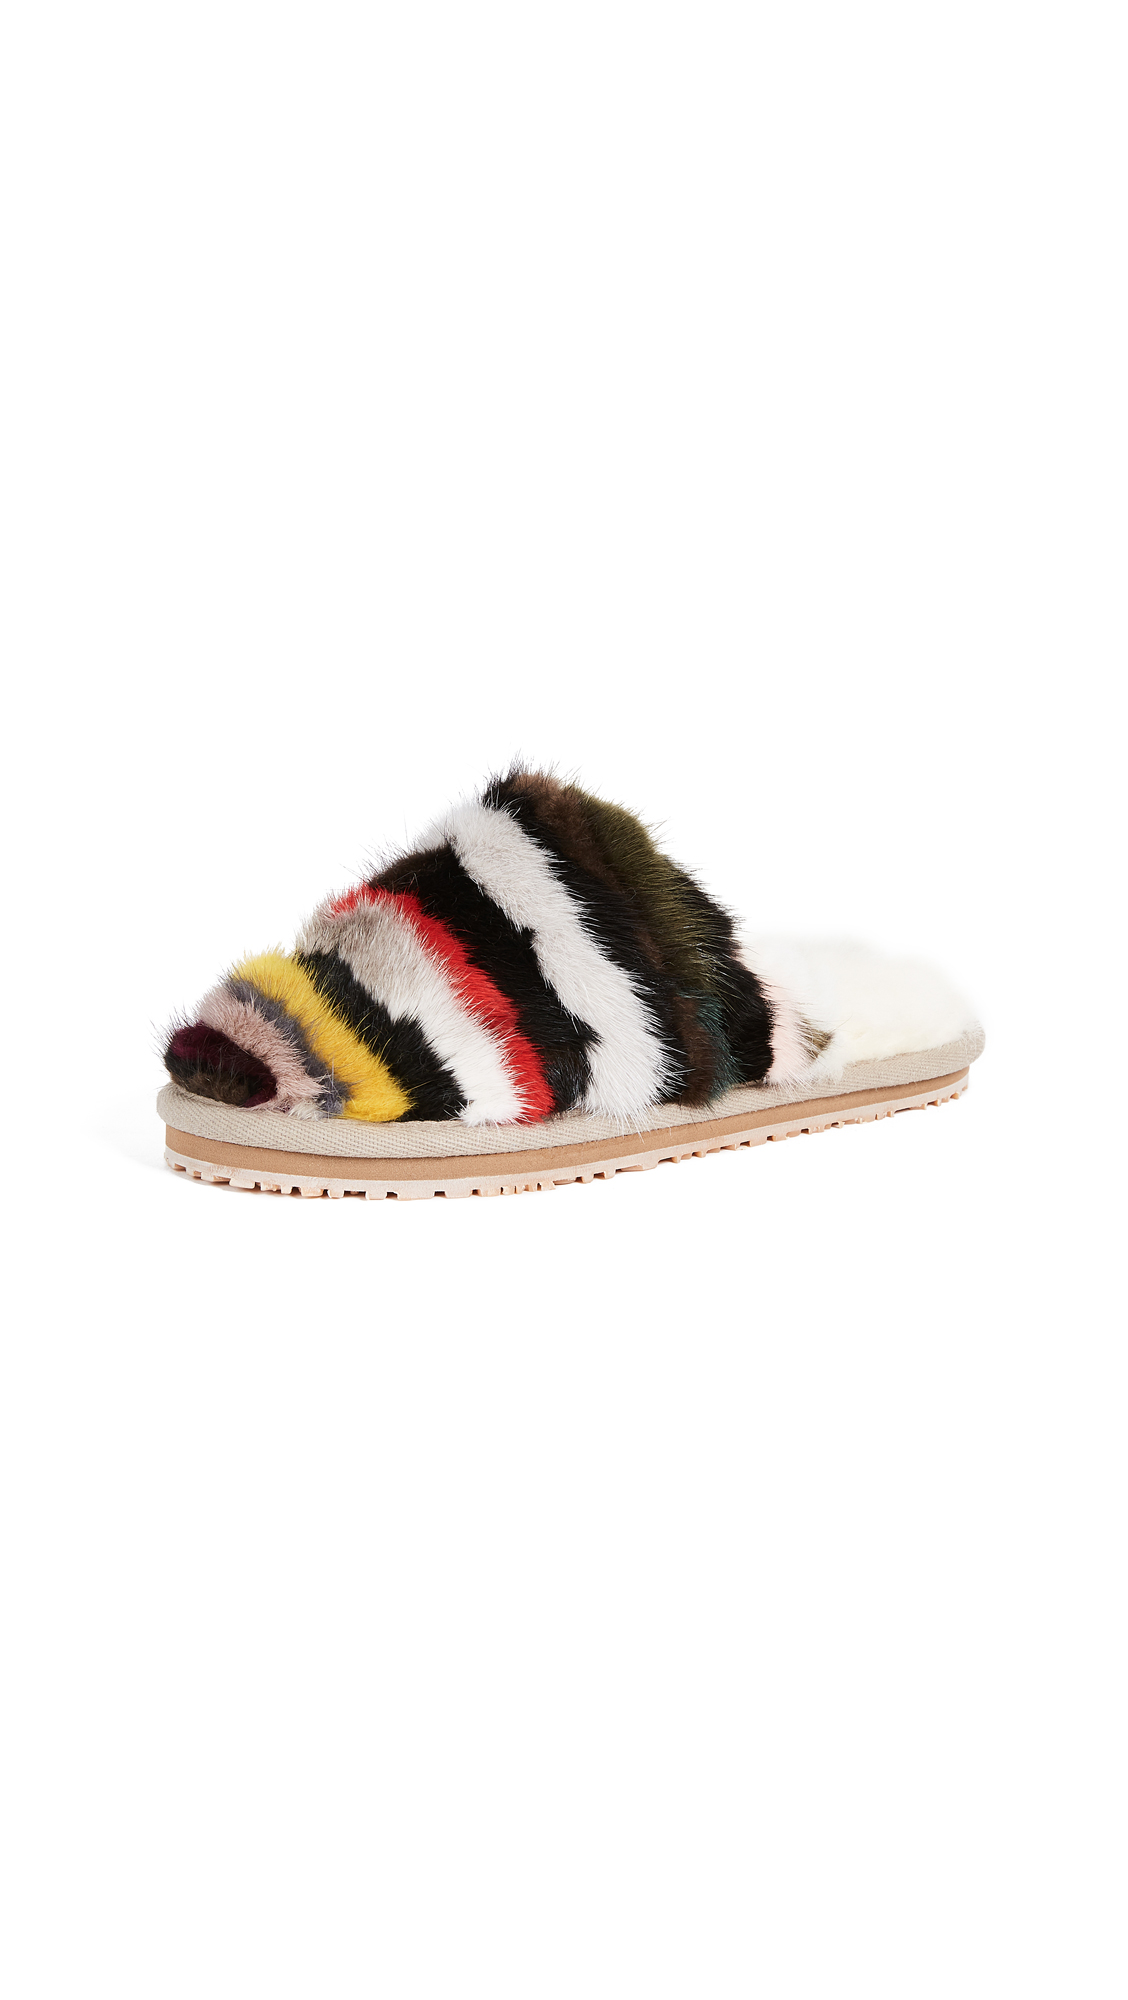 ONE by Mink Stripey Slippers - Multi